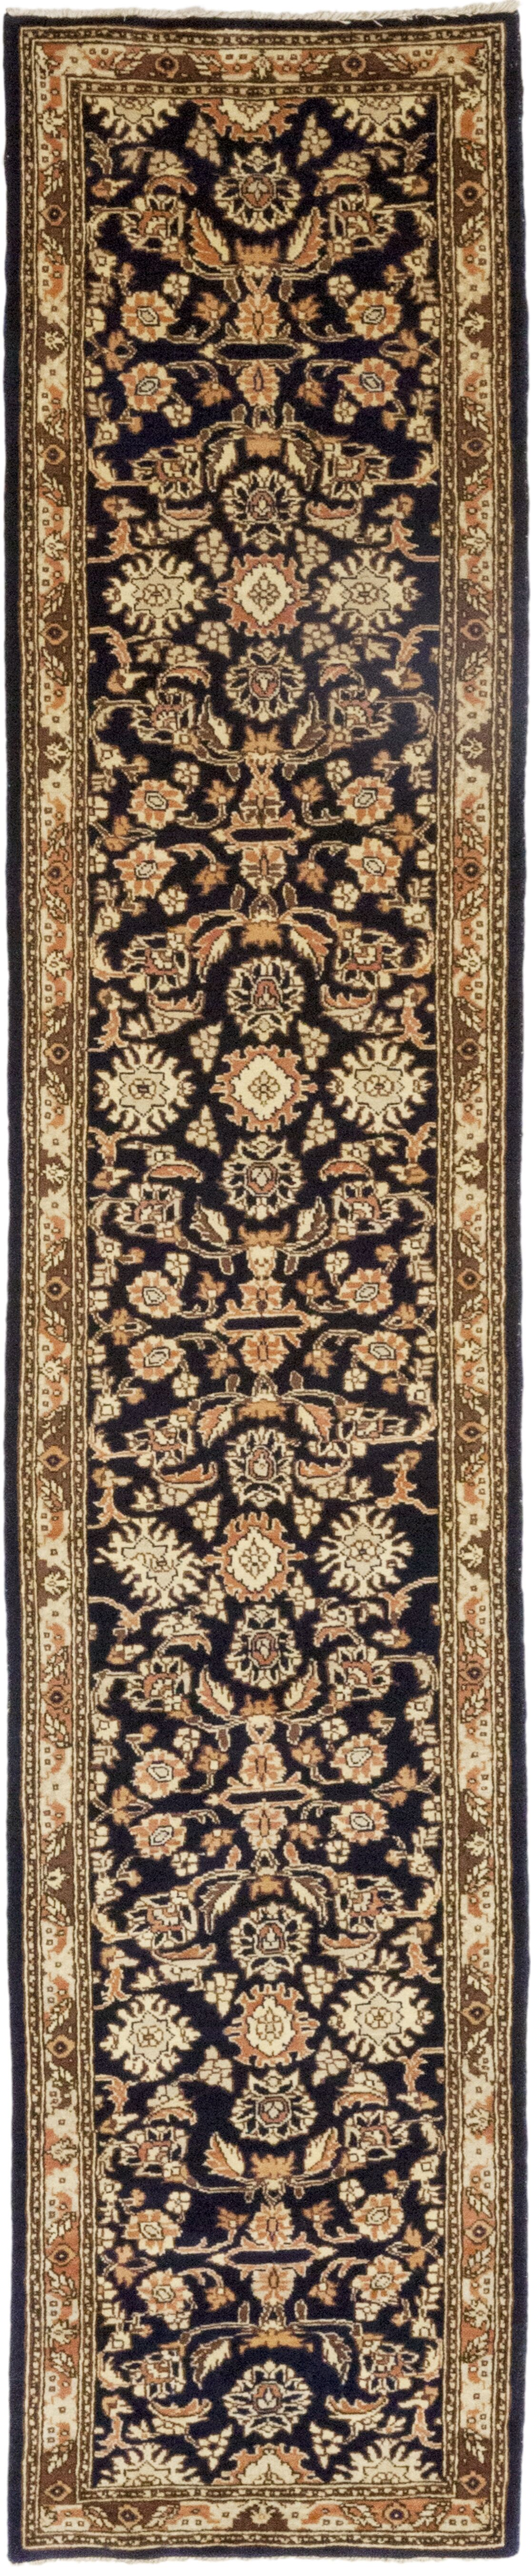 One-of-a-Kind Corrado Hand-Knotted Wool Black/Brown Indoor Area Rug